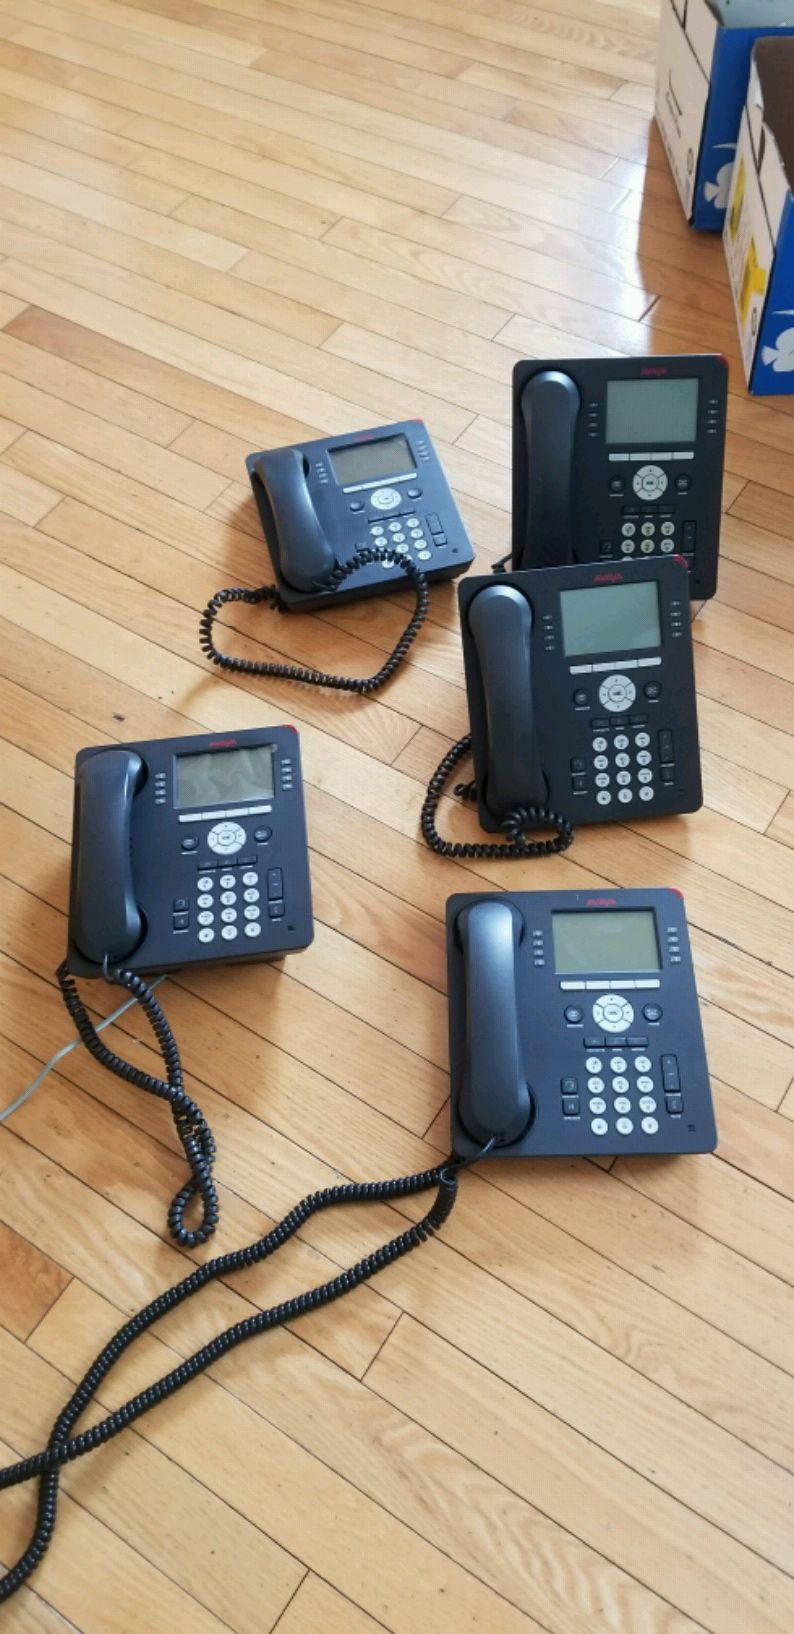 used avaya business ip office phone 5 phones wiring for sale in telephone wiring color code business phone wiring [ 794 x 1634 Pixel ]